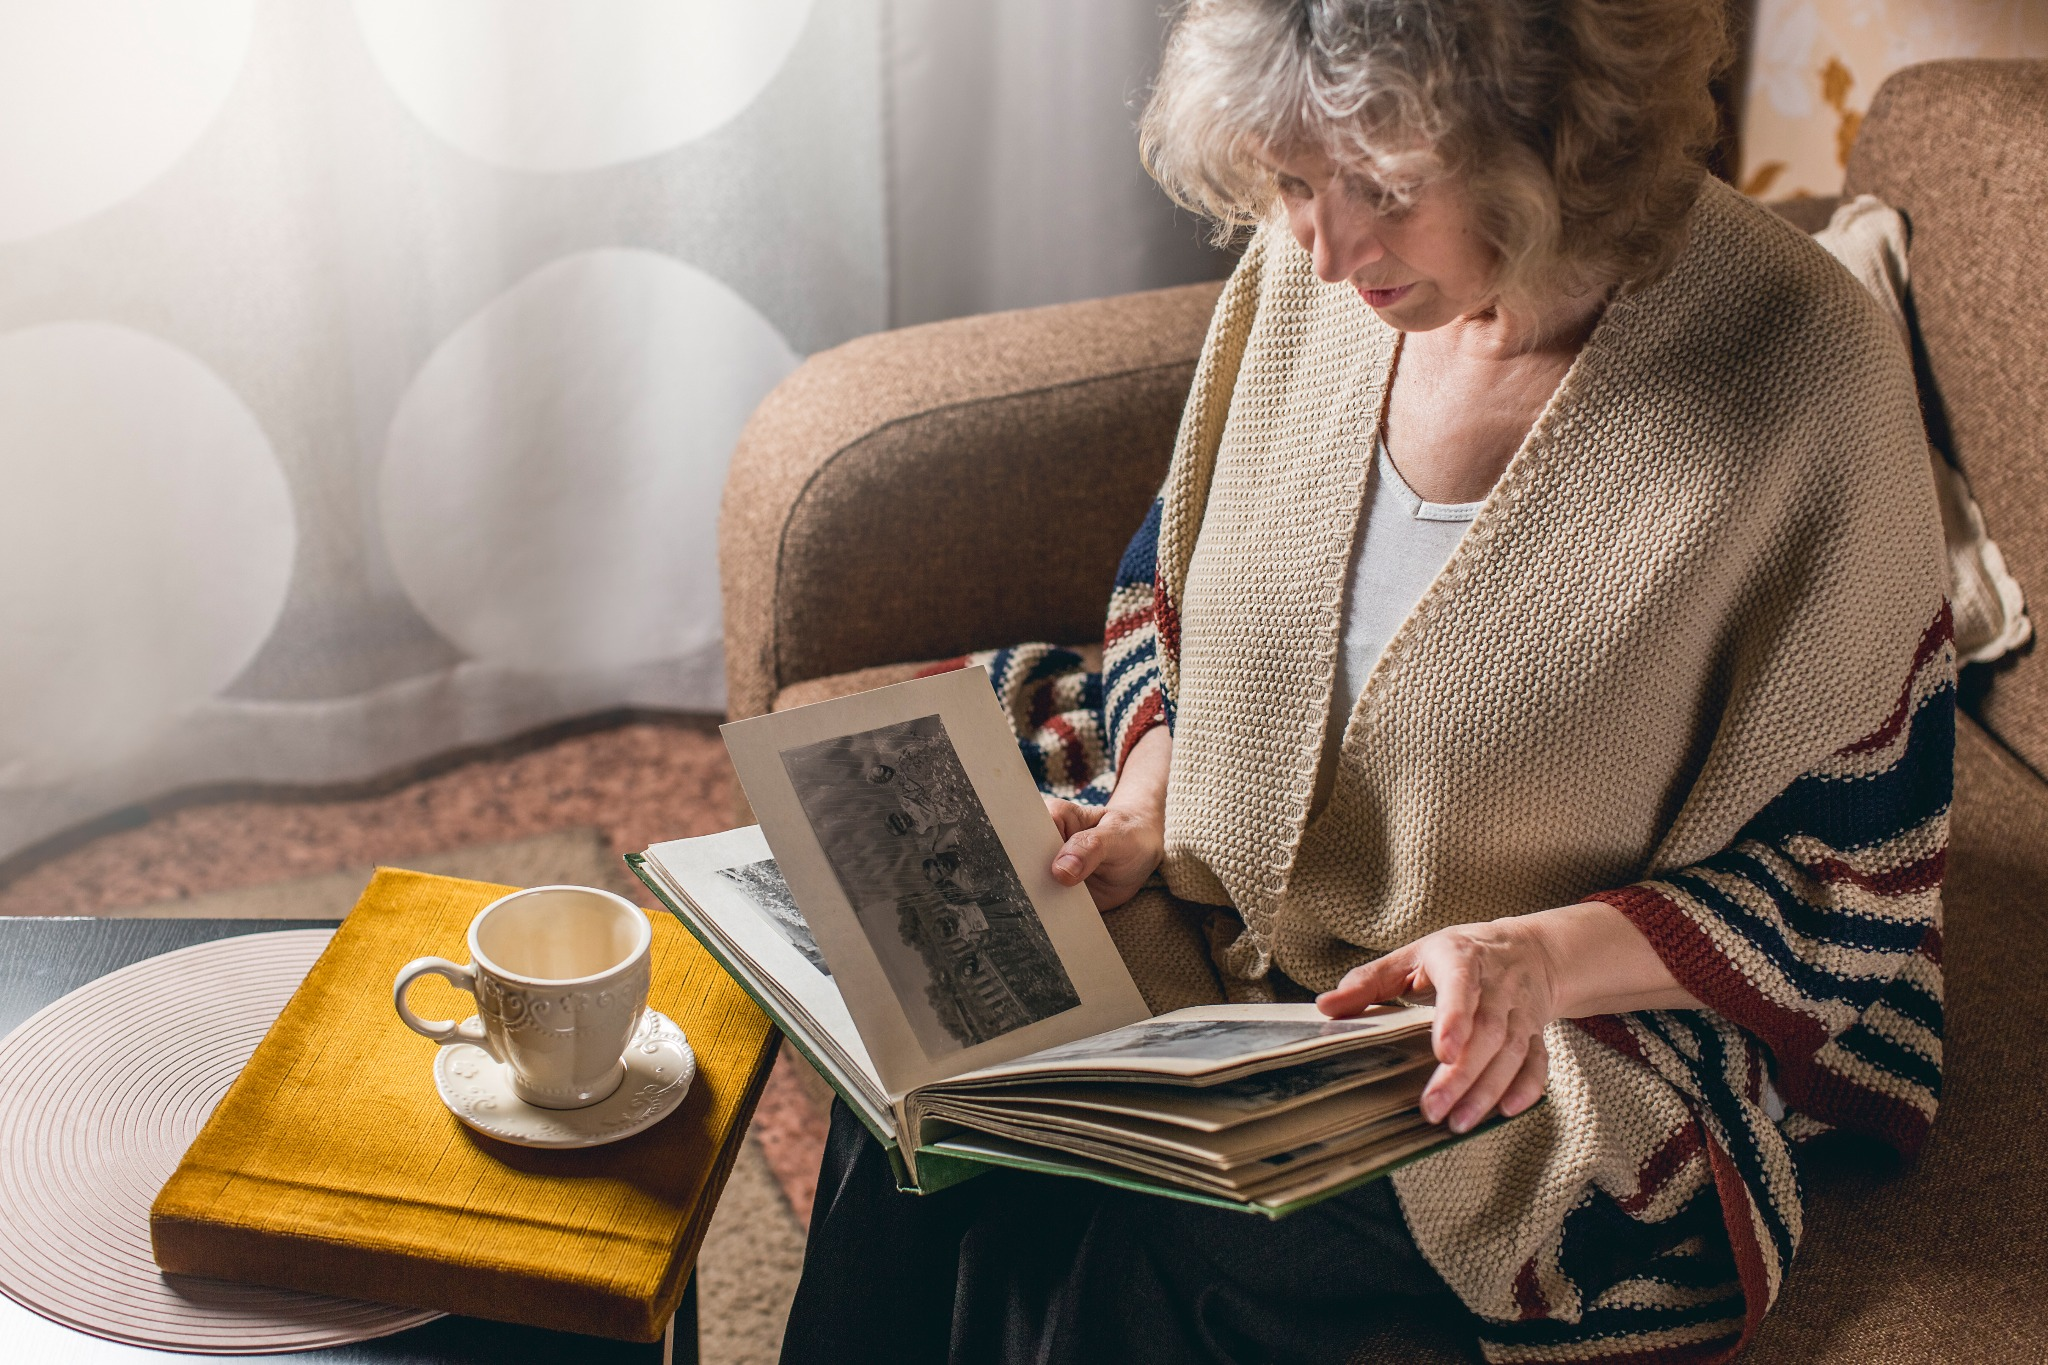 A elderly woman experiencing Hiraeth (the Welsh word for nostalgia) while looking at a photo album and having tea.